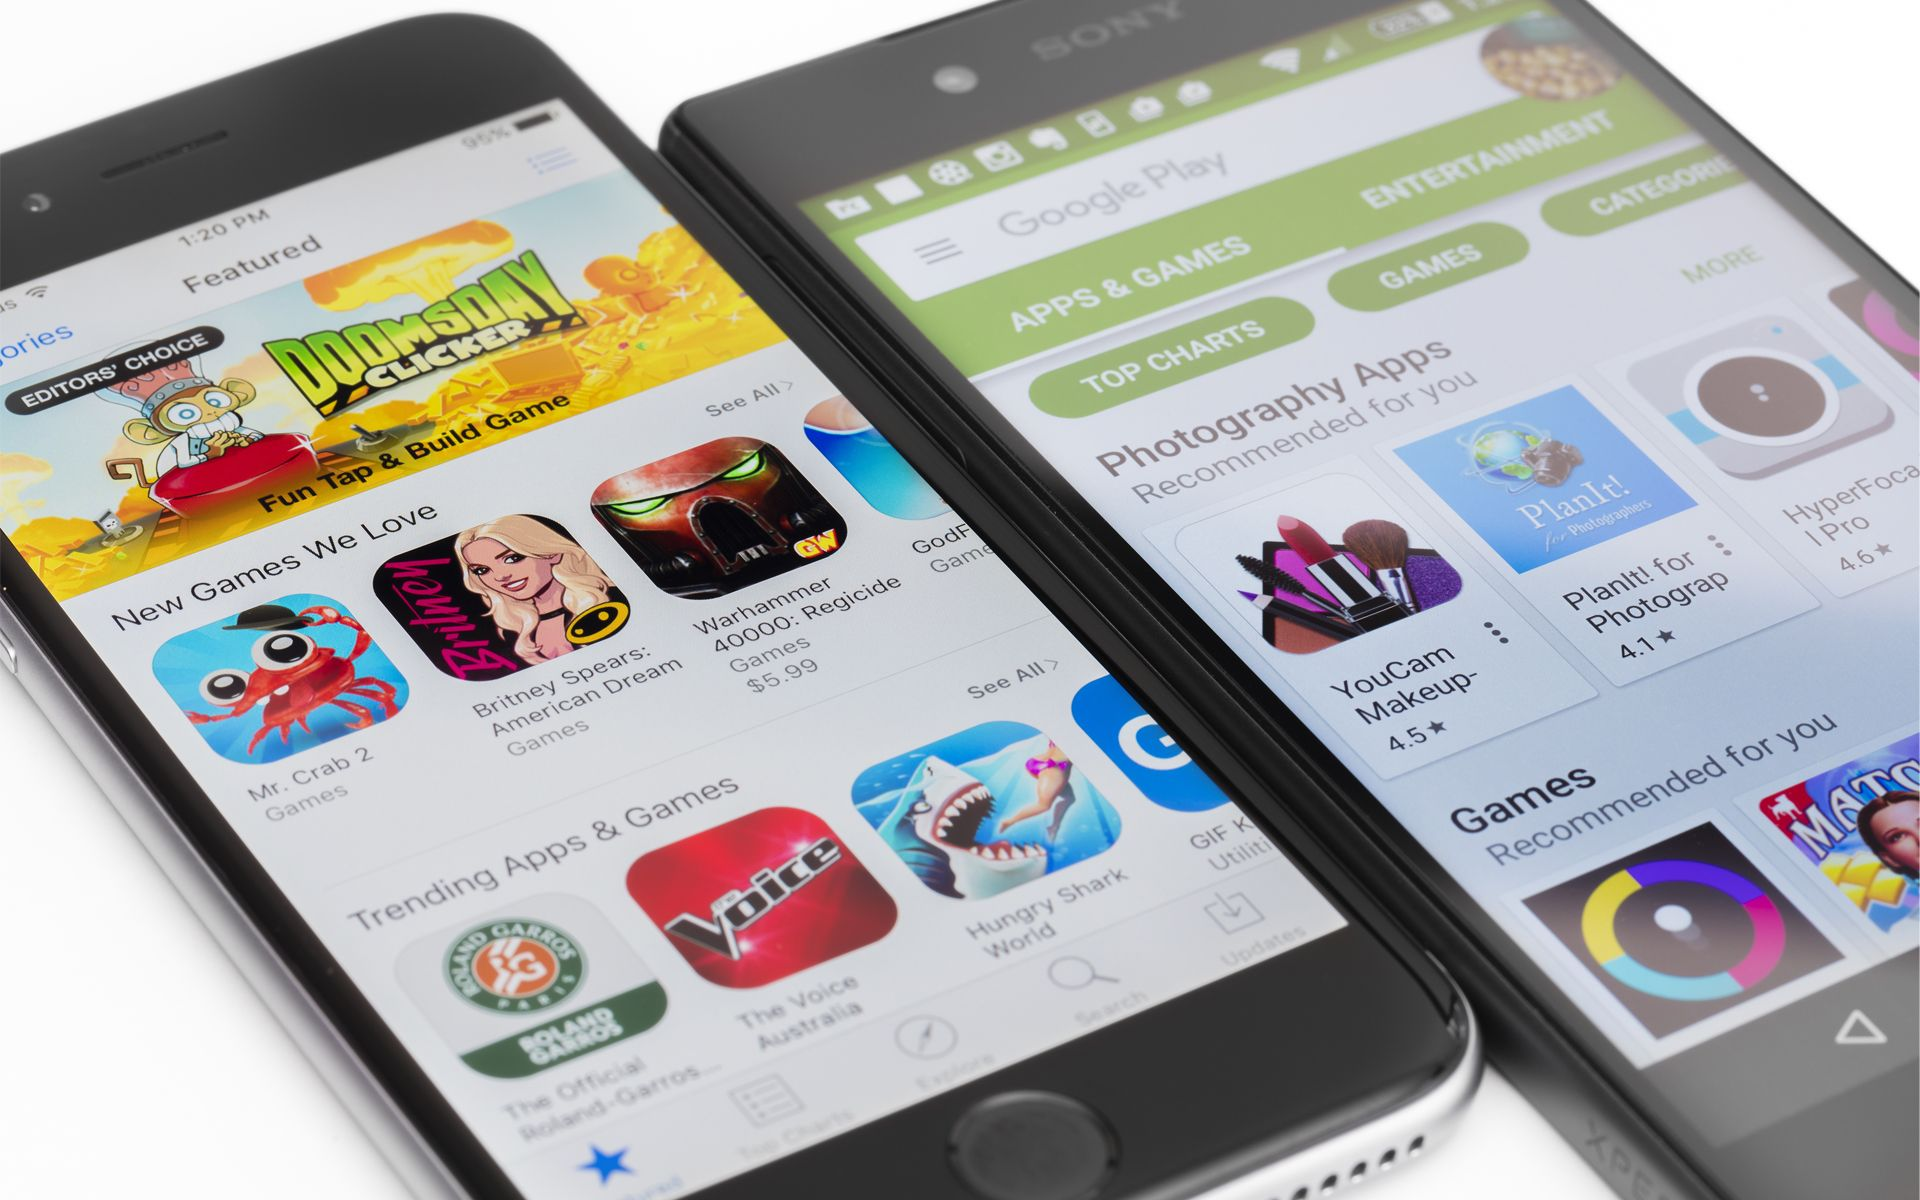 The increasing speed, storage, and performance of Android